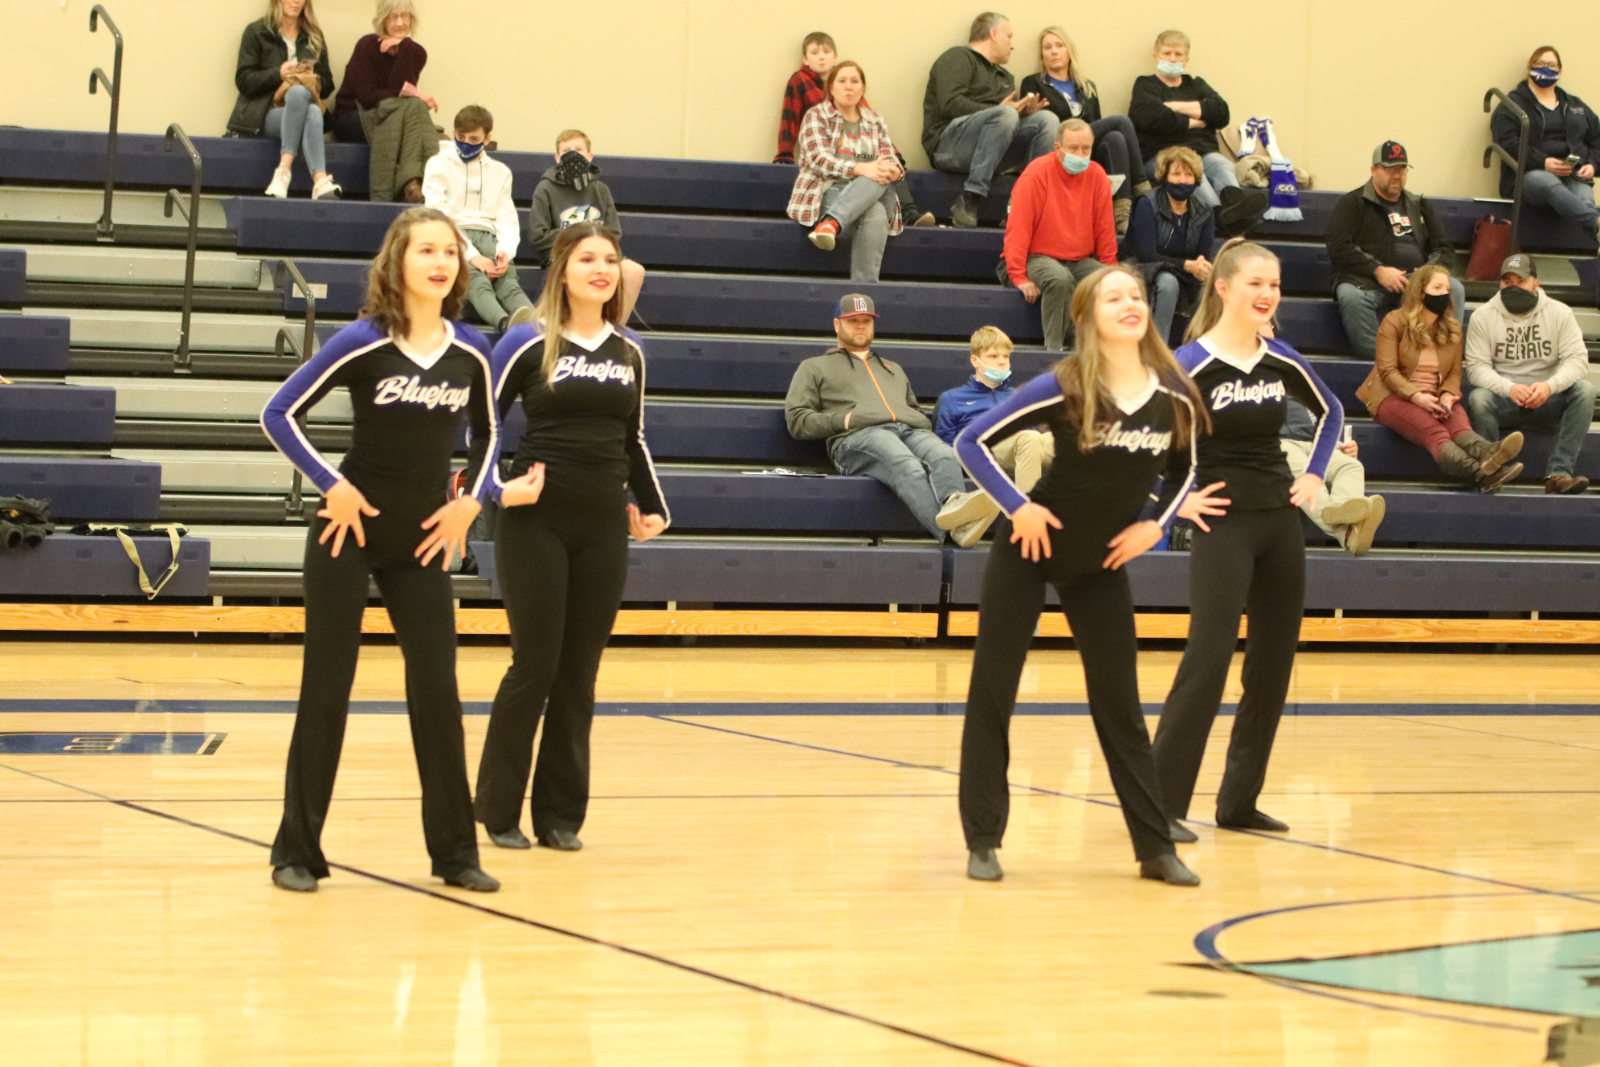 Dance Team at the West Co Boys' Basketball Game